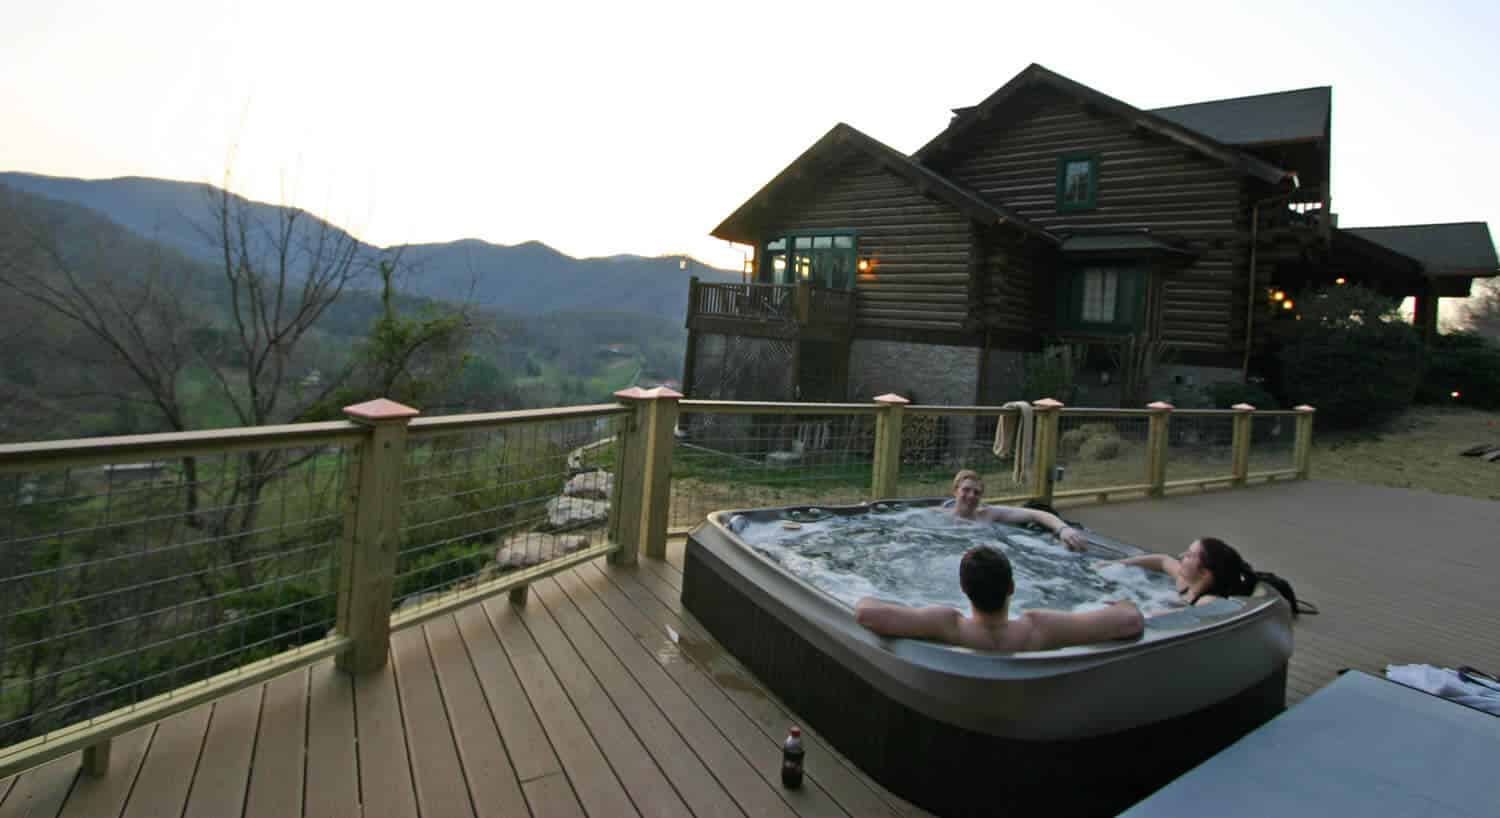 Three people enjoy a hot tub on a wooden deck next to a large log-cabin style home.